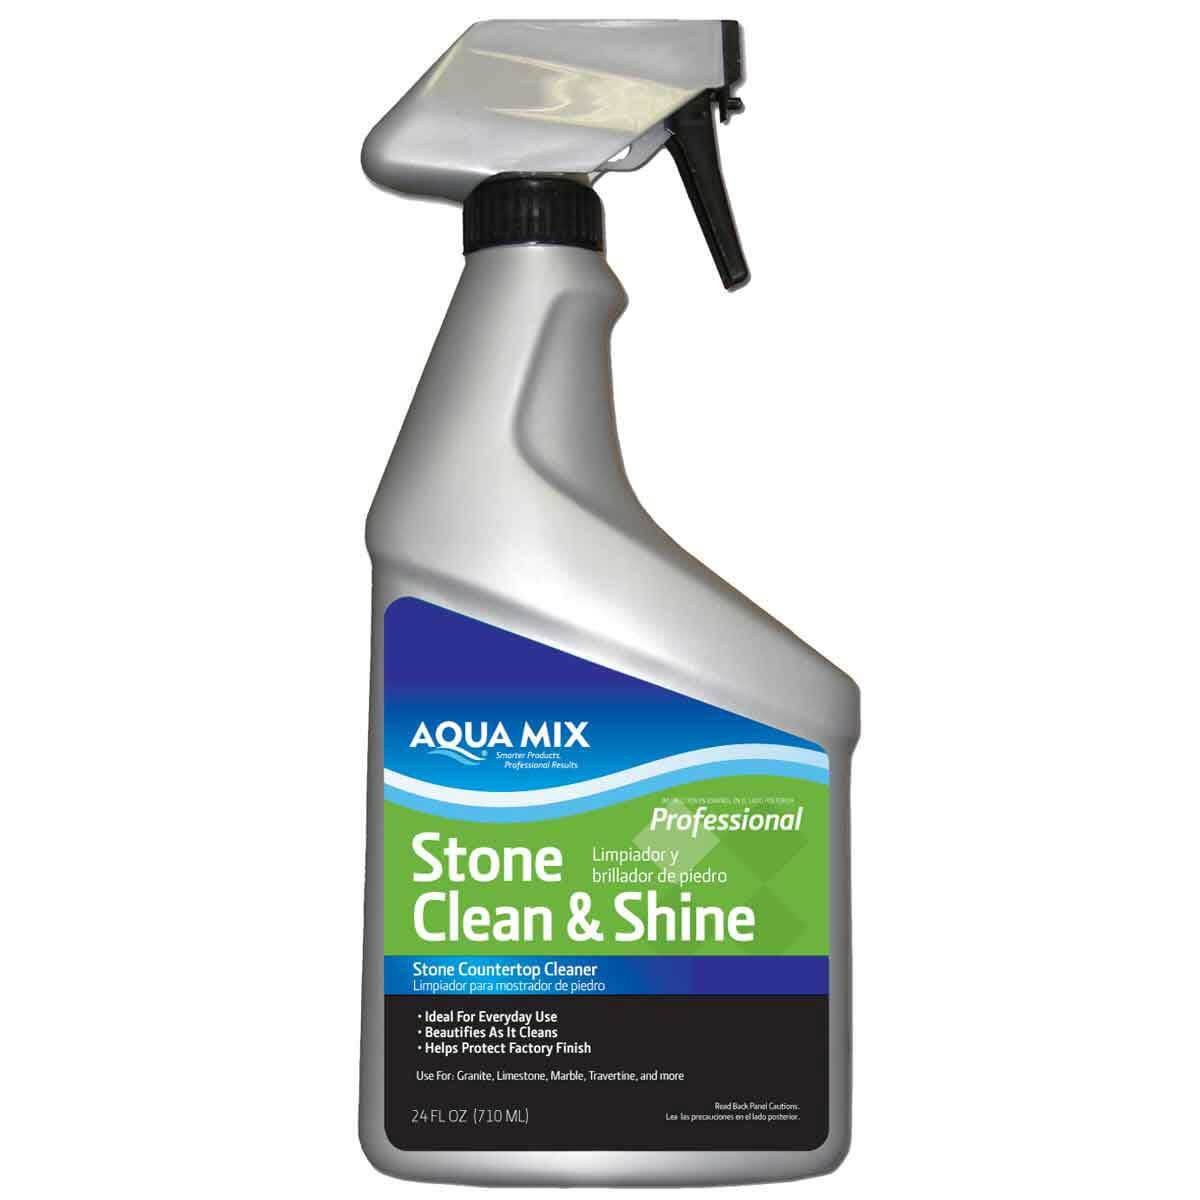 Aqua Mix Stone Clean & Shine 24oz Spray Bottle 030151-4